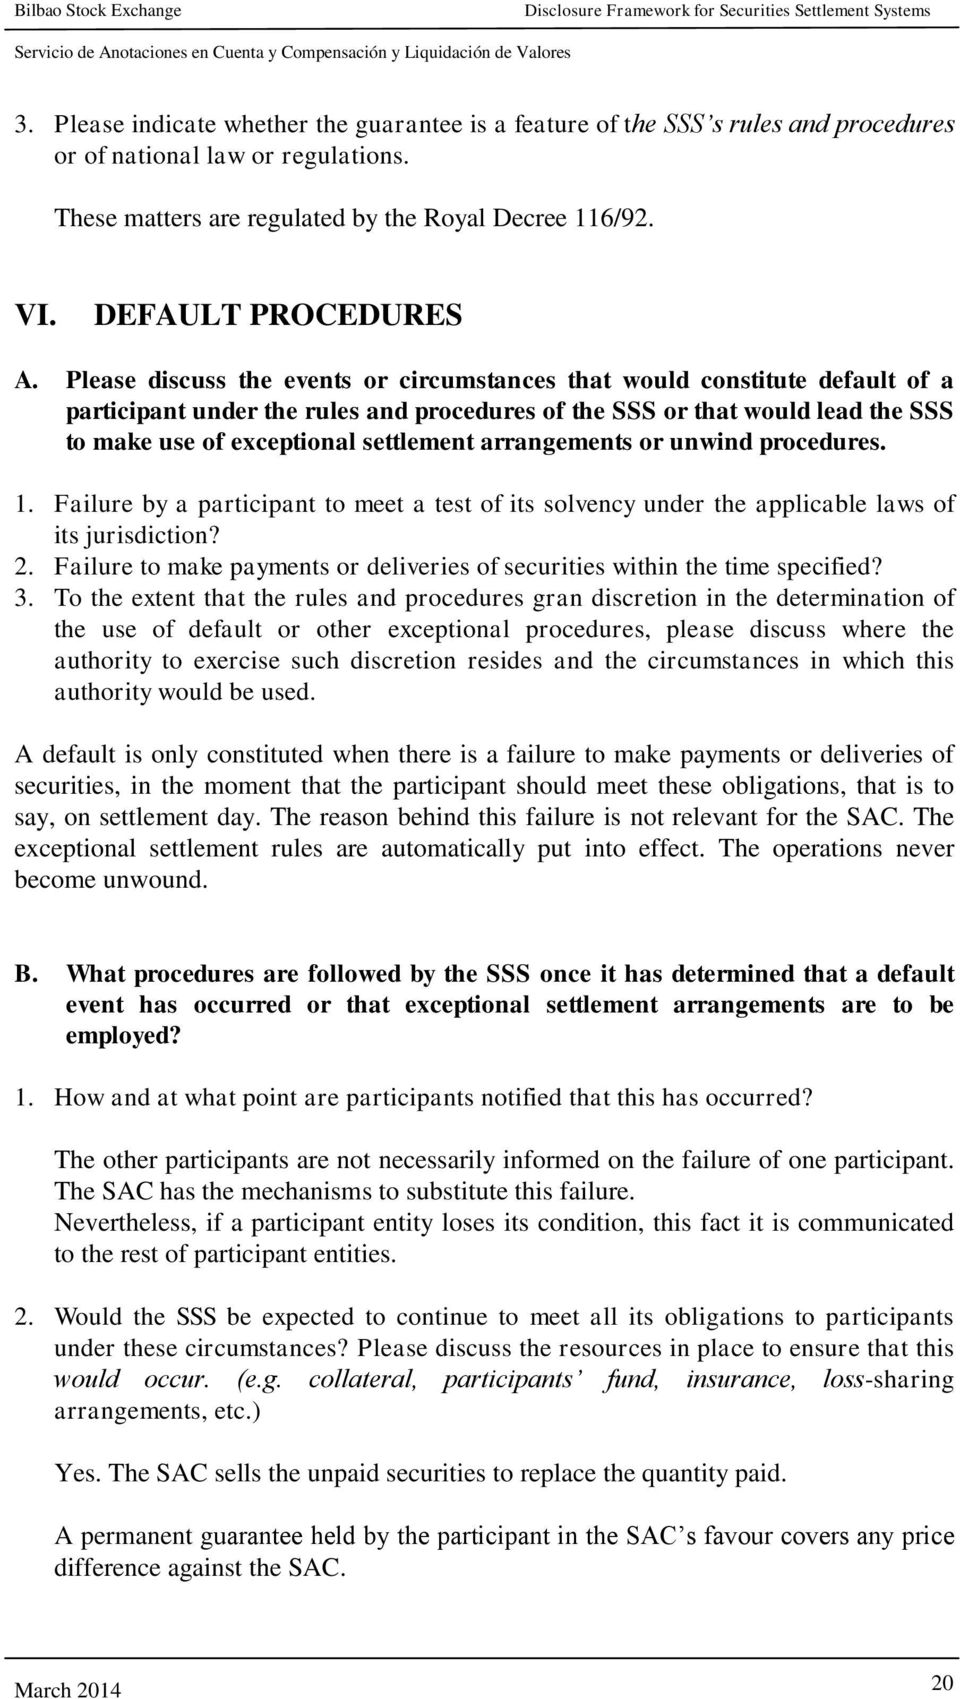 Please discuss the events or circumstances that would constitute default of a participant under the rules and procedures of the SSS or that would lead the SSS to make use of exceptional settlement